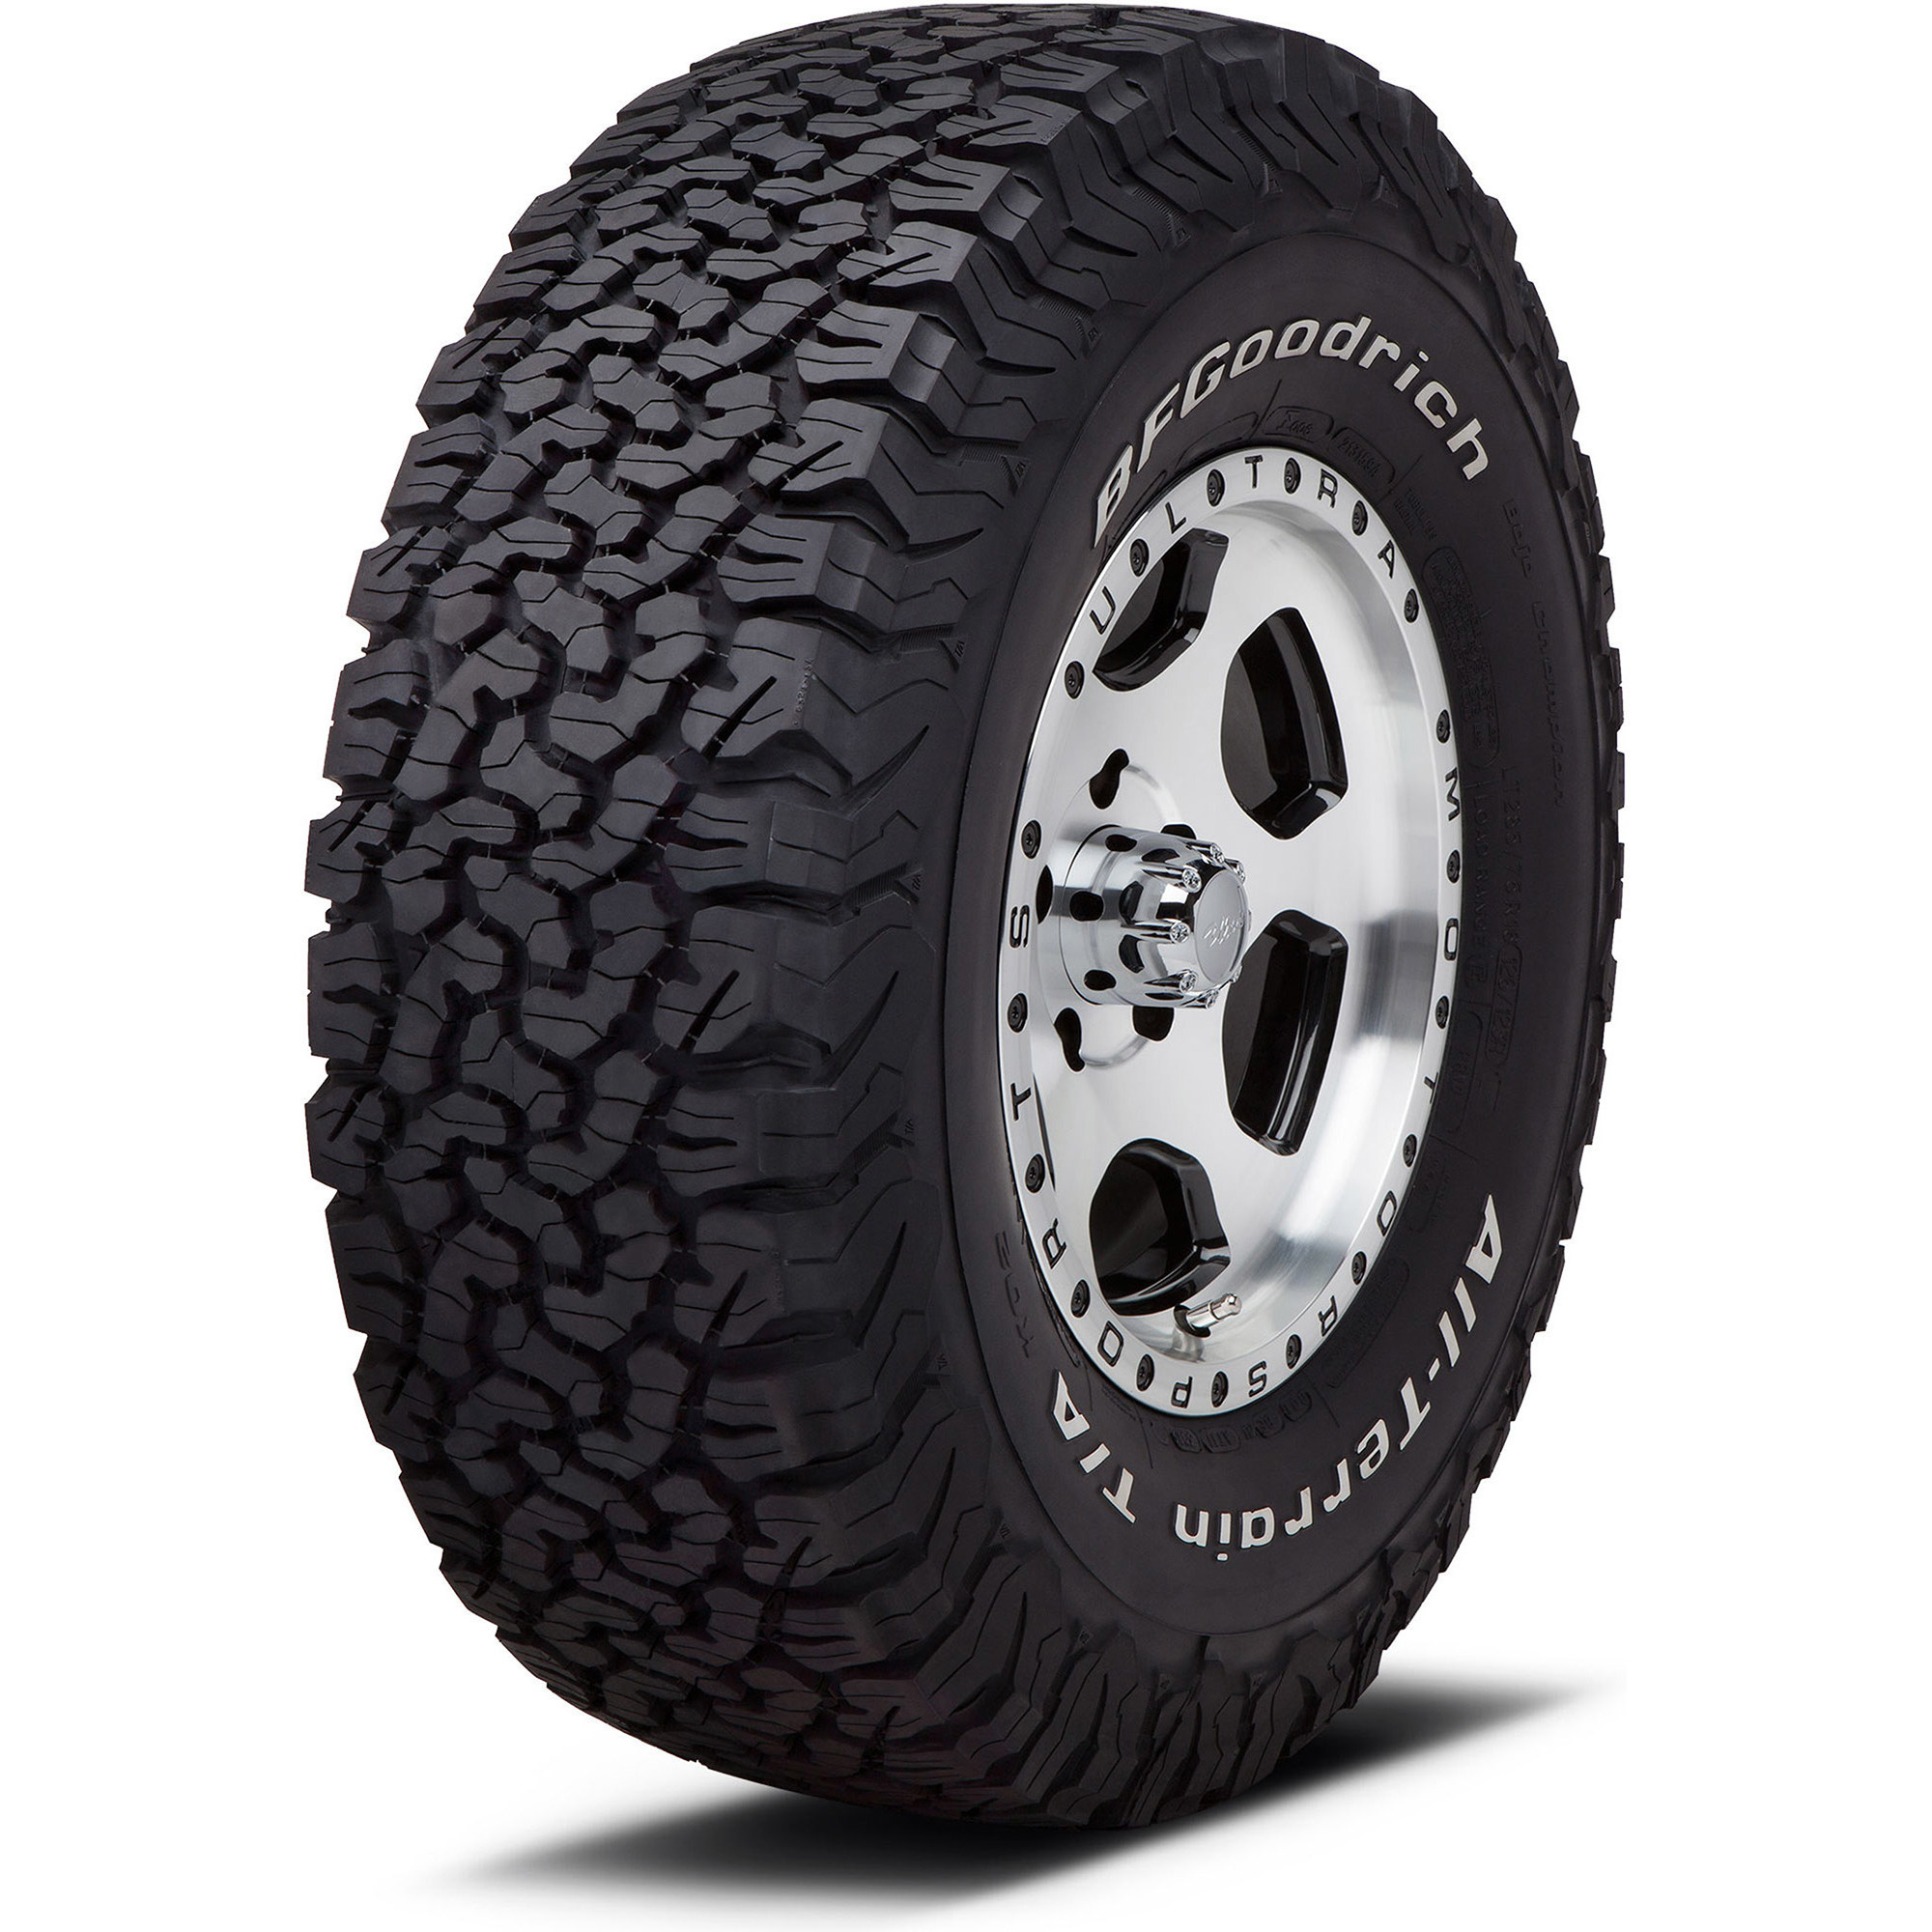 летние шины BF Goodrich All Terrain TA KO2 275/65 R17 121/118/S